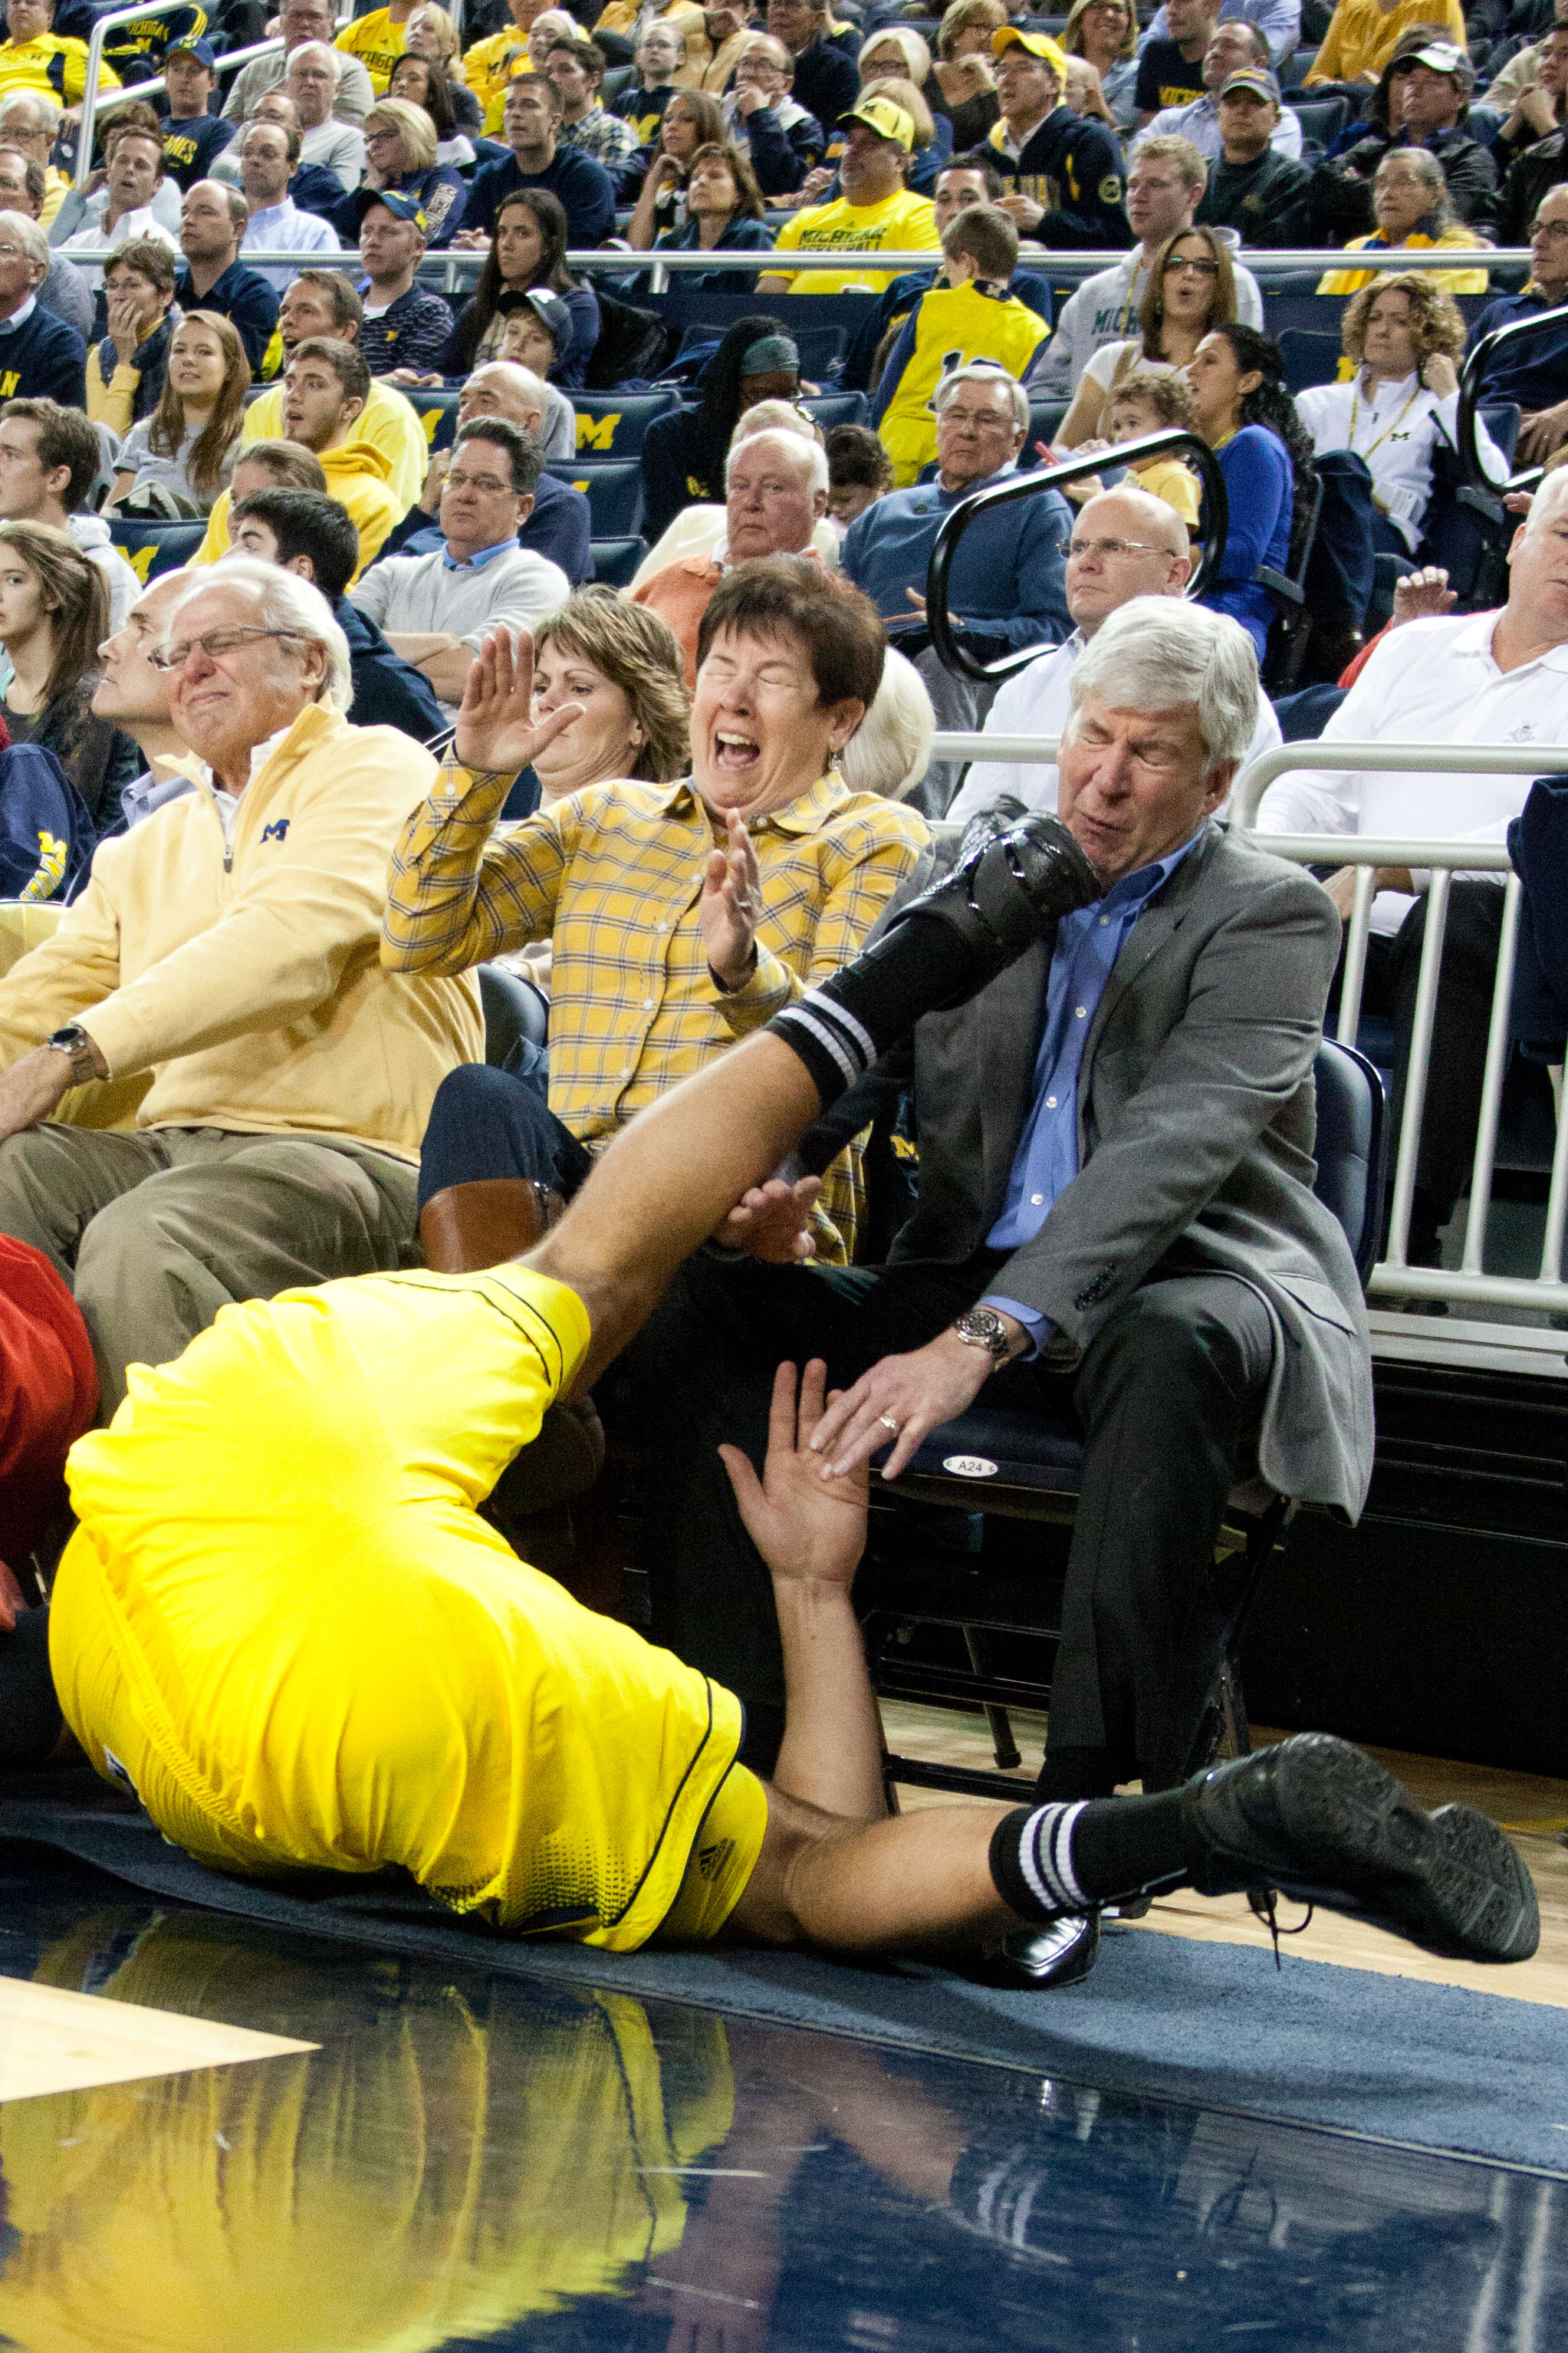 Michigan 79, NC State 72 – Mitch McGary kicks Gov. Rick Snyder in the face